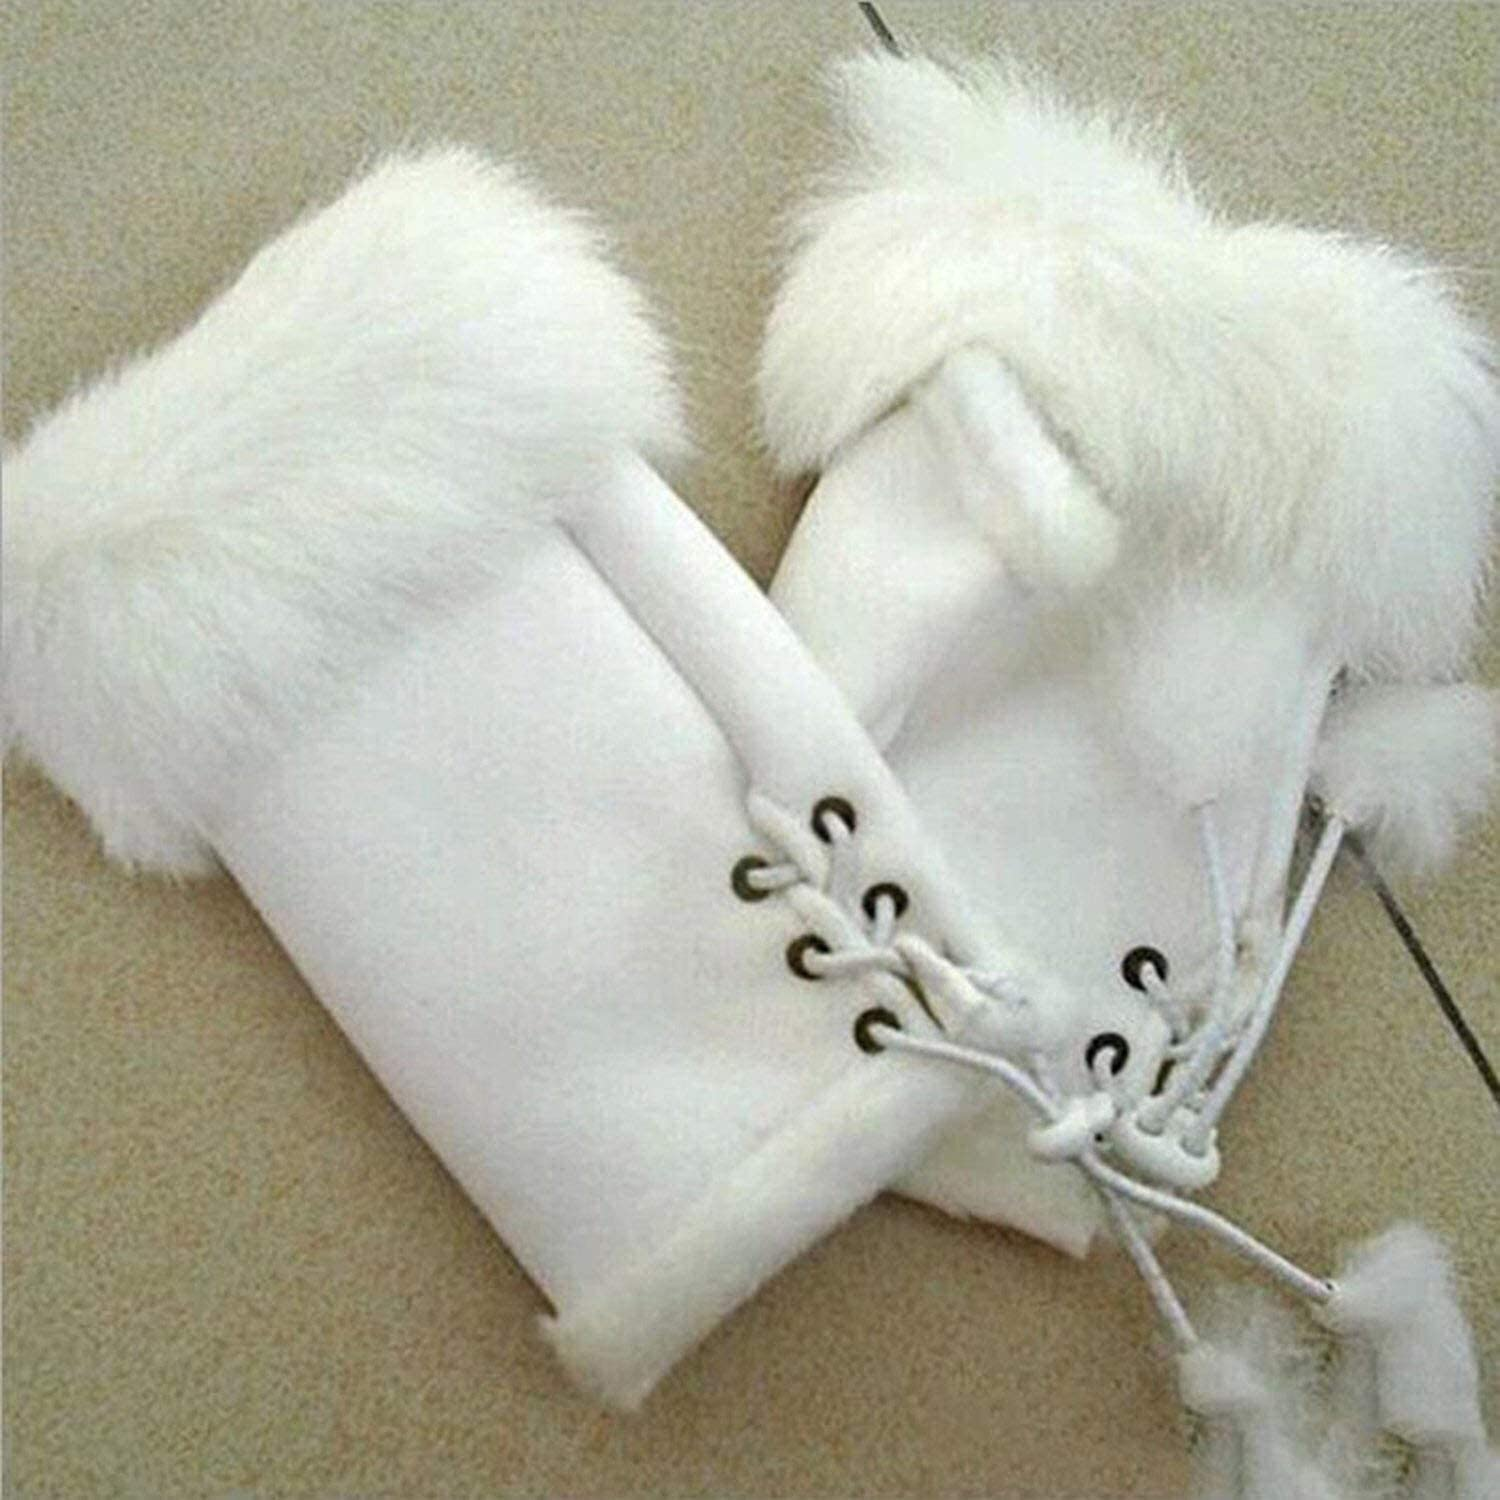 Warm Gloves Female Rabbit Hair Wrist Gloves Fingerless Computer Typing Mittens Winter Women Suede Leather Warm Thick Cashmere Gloves (Color : White, Size : One Size)